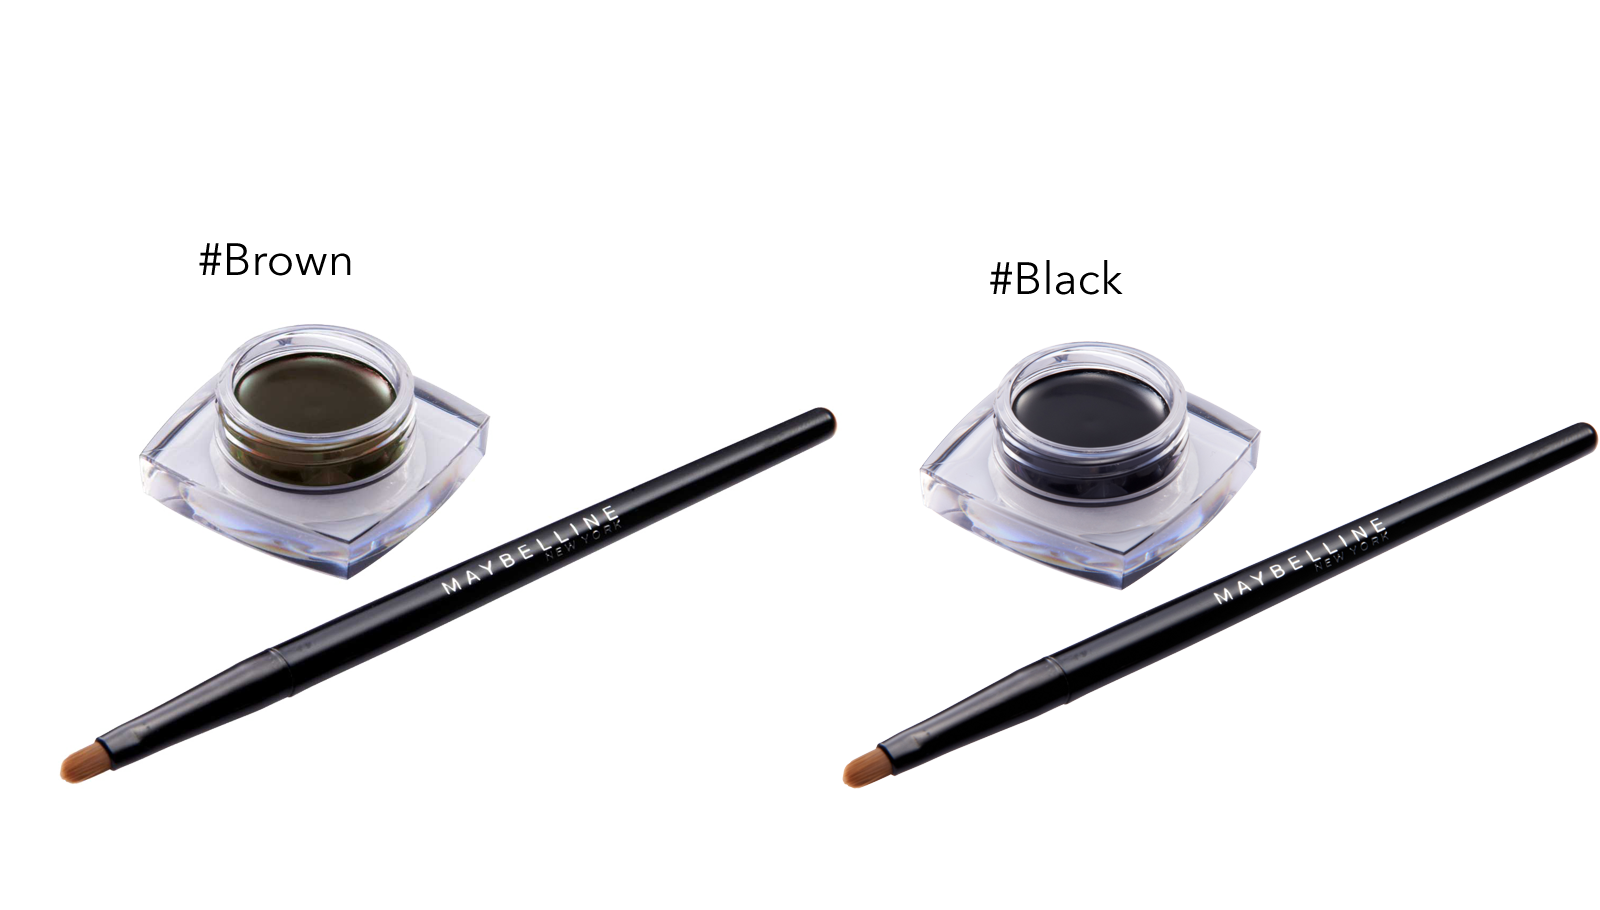 Maybelline Eye Studio Lasting Drama Gel Liner 2 Colors To Hyper Sharp Wing Eyeliner Removes Easily With Expert Eyes Moisturizing Makeup Remover